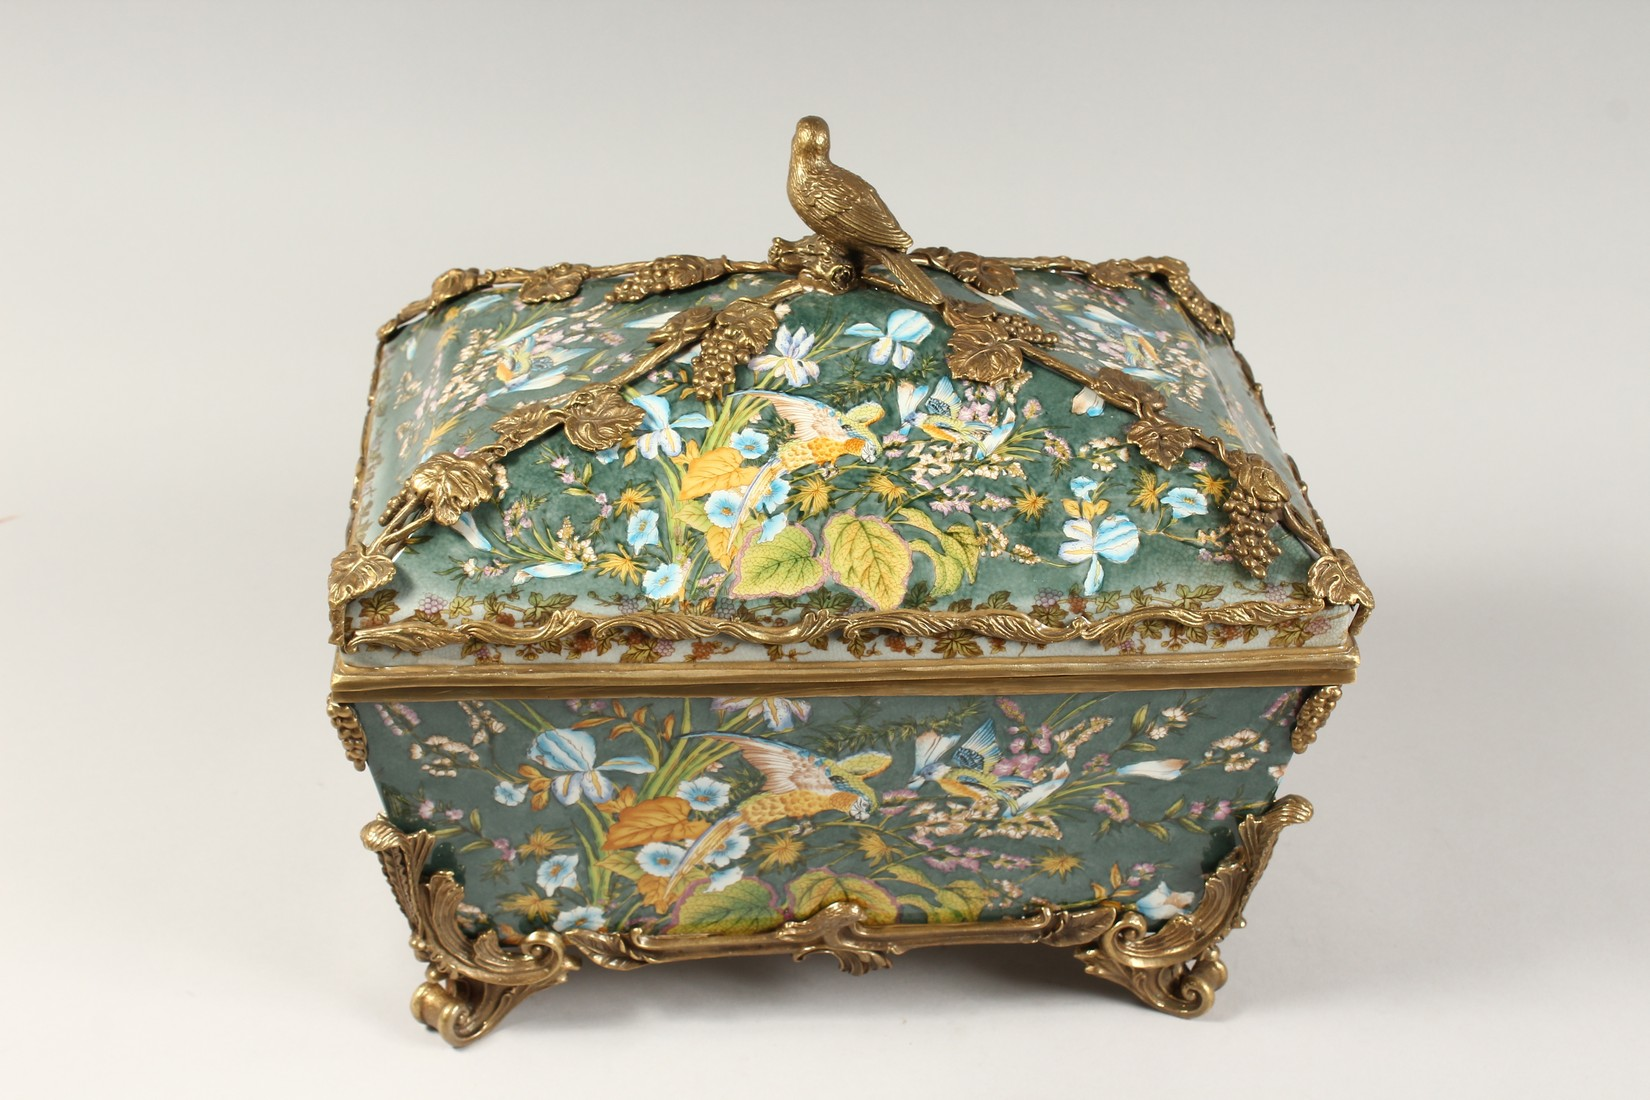 A LARGE CONTINENTAL STYLE PORCELAIN AND BRONZE MOUNTED CASKET, decorated with exotic flowers and - Image 3 of 5